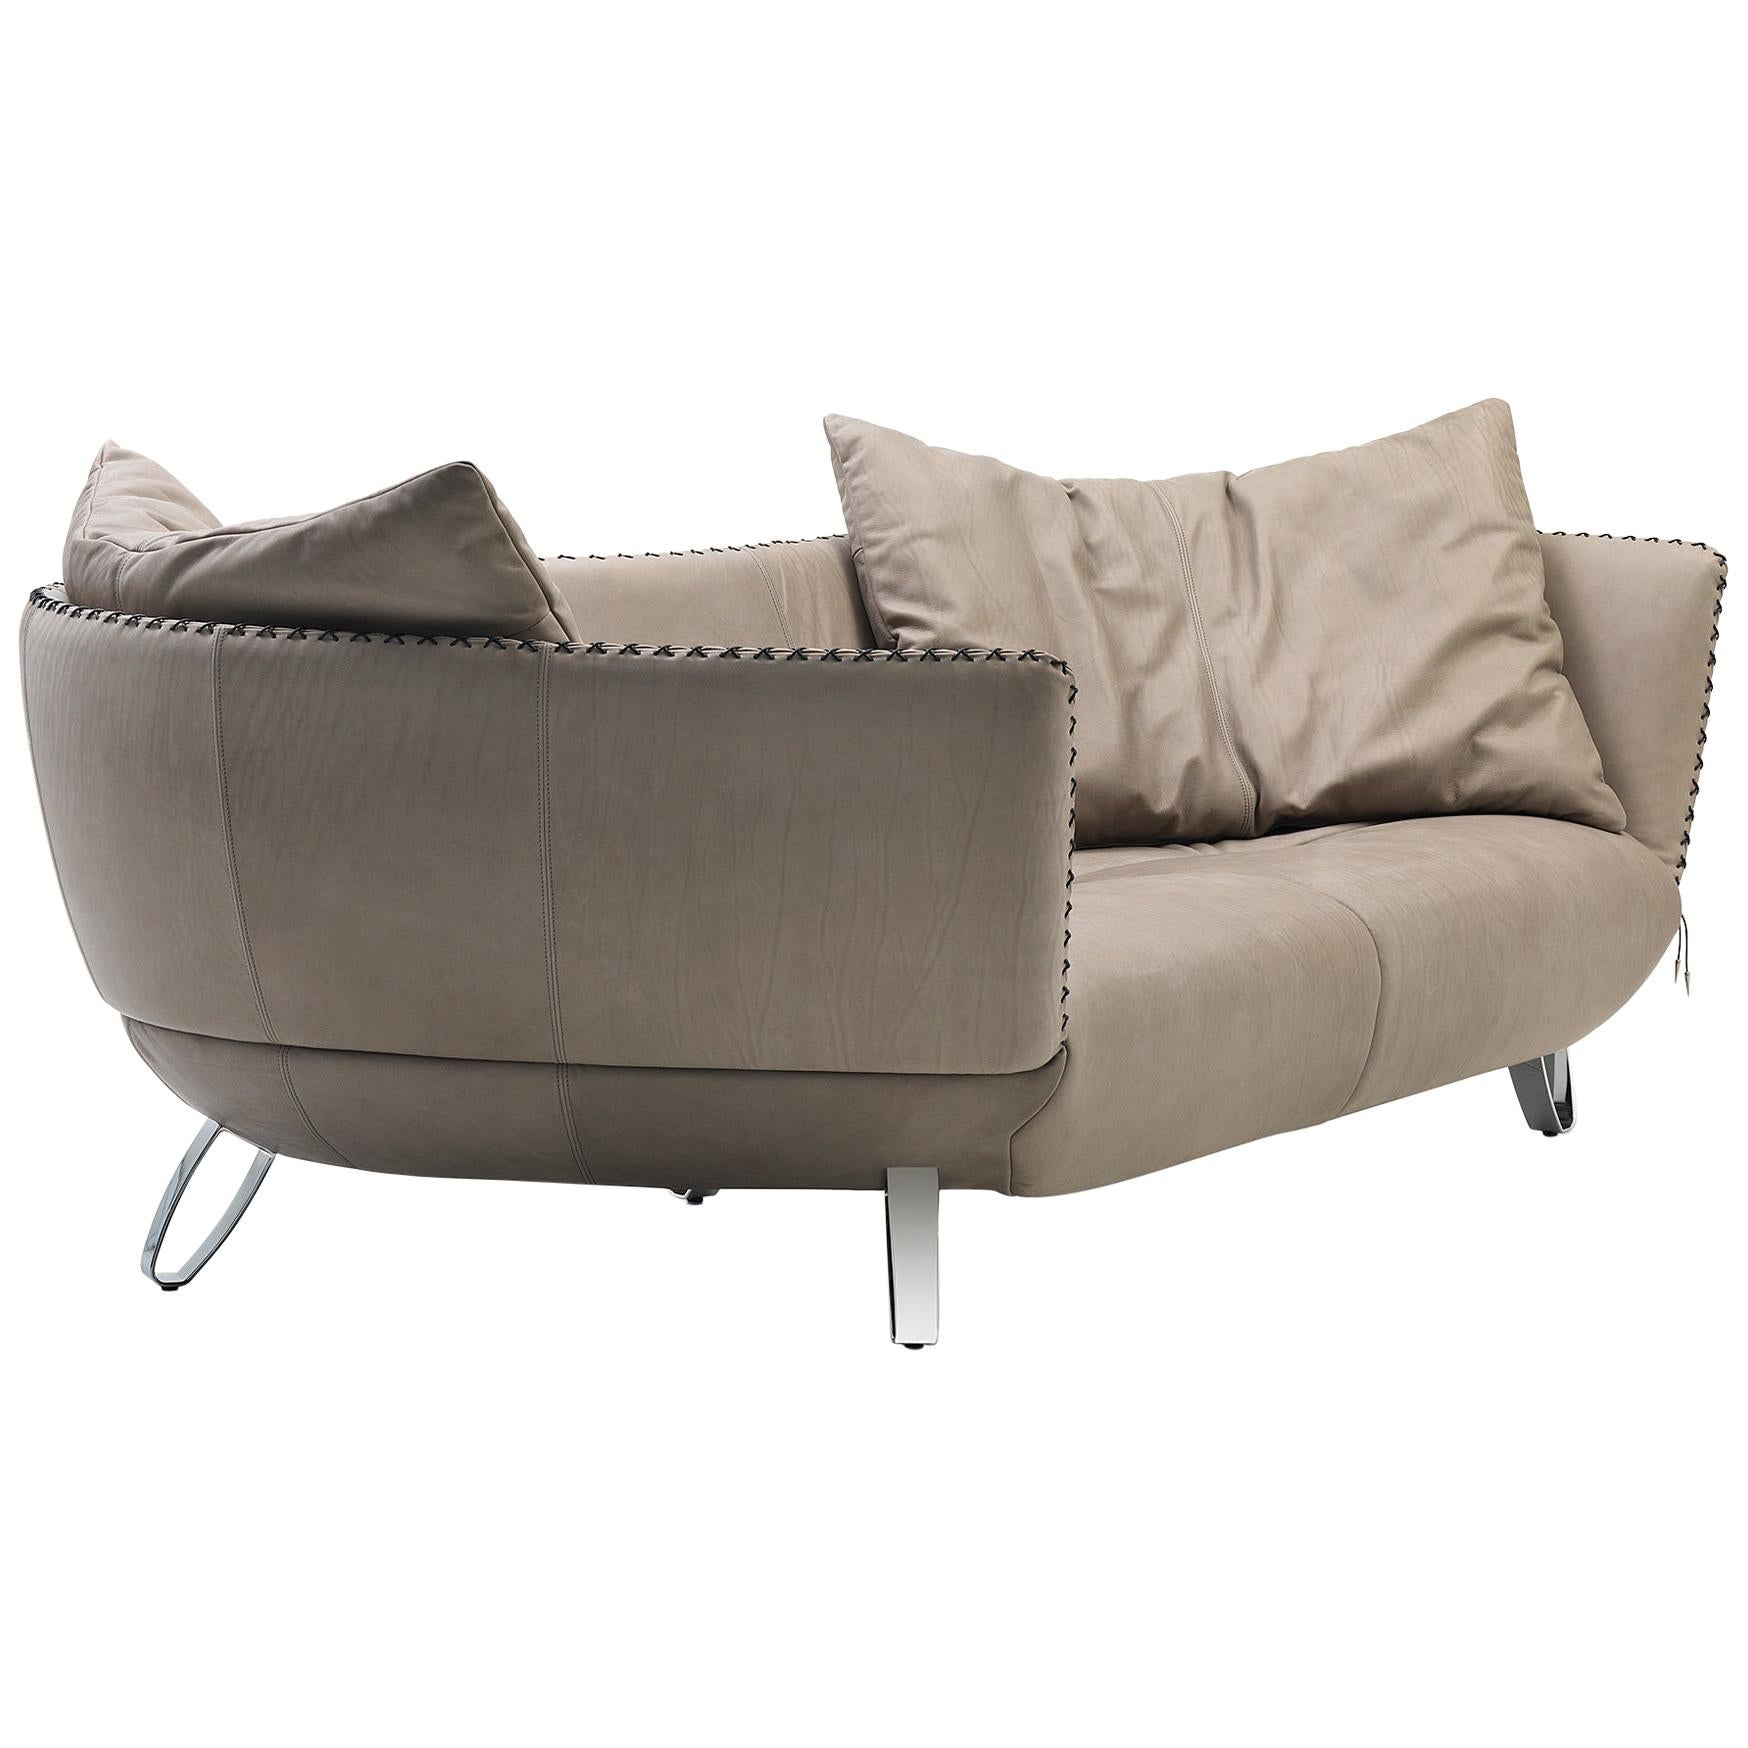 De Sede DS-102 Sofa in Taupe Upholstery by Mathias Hoffmann